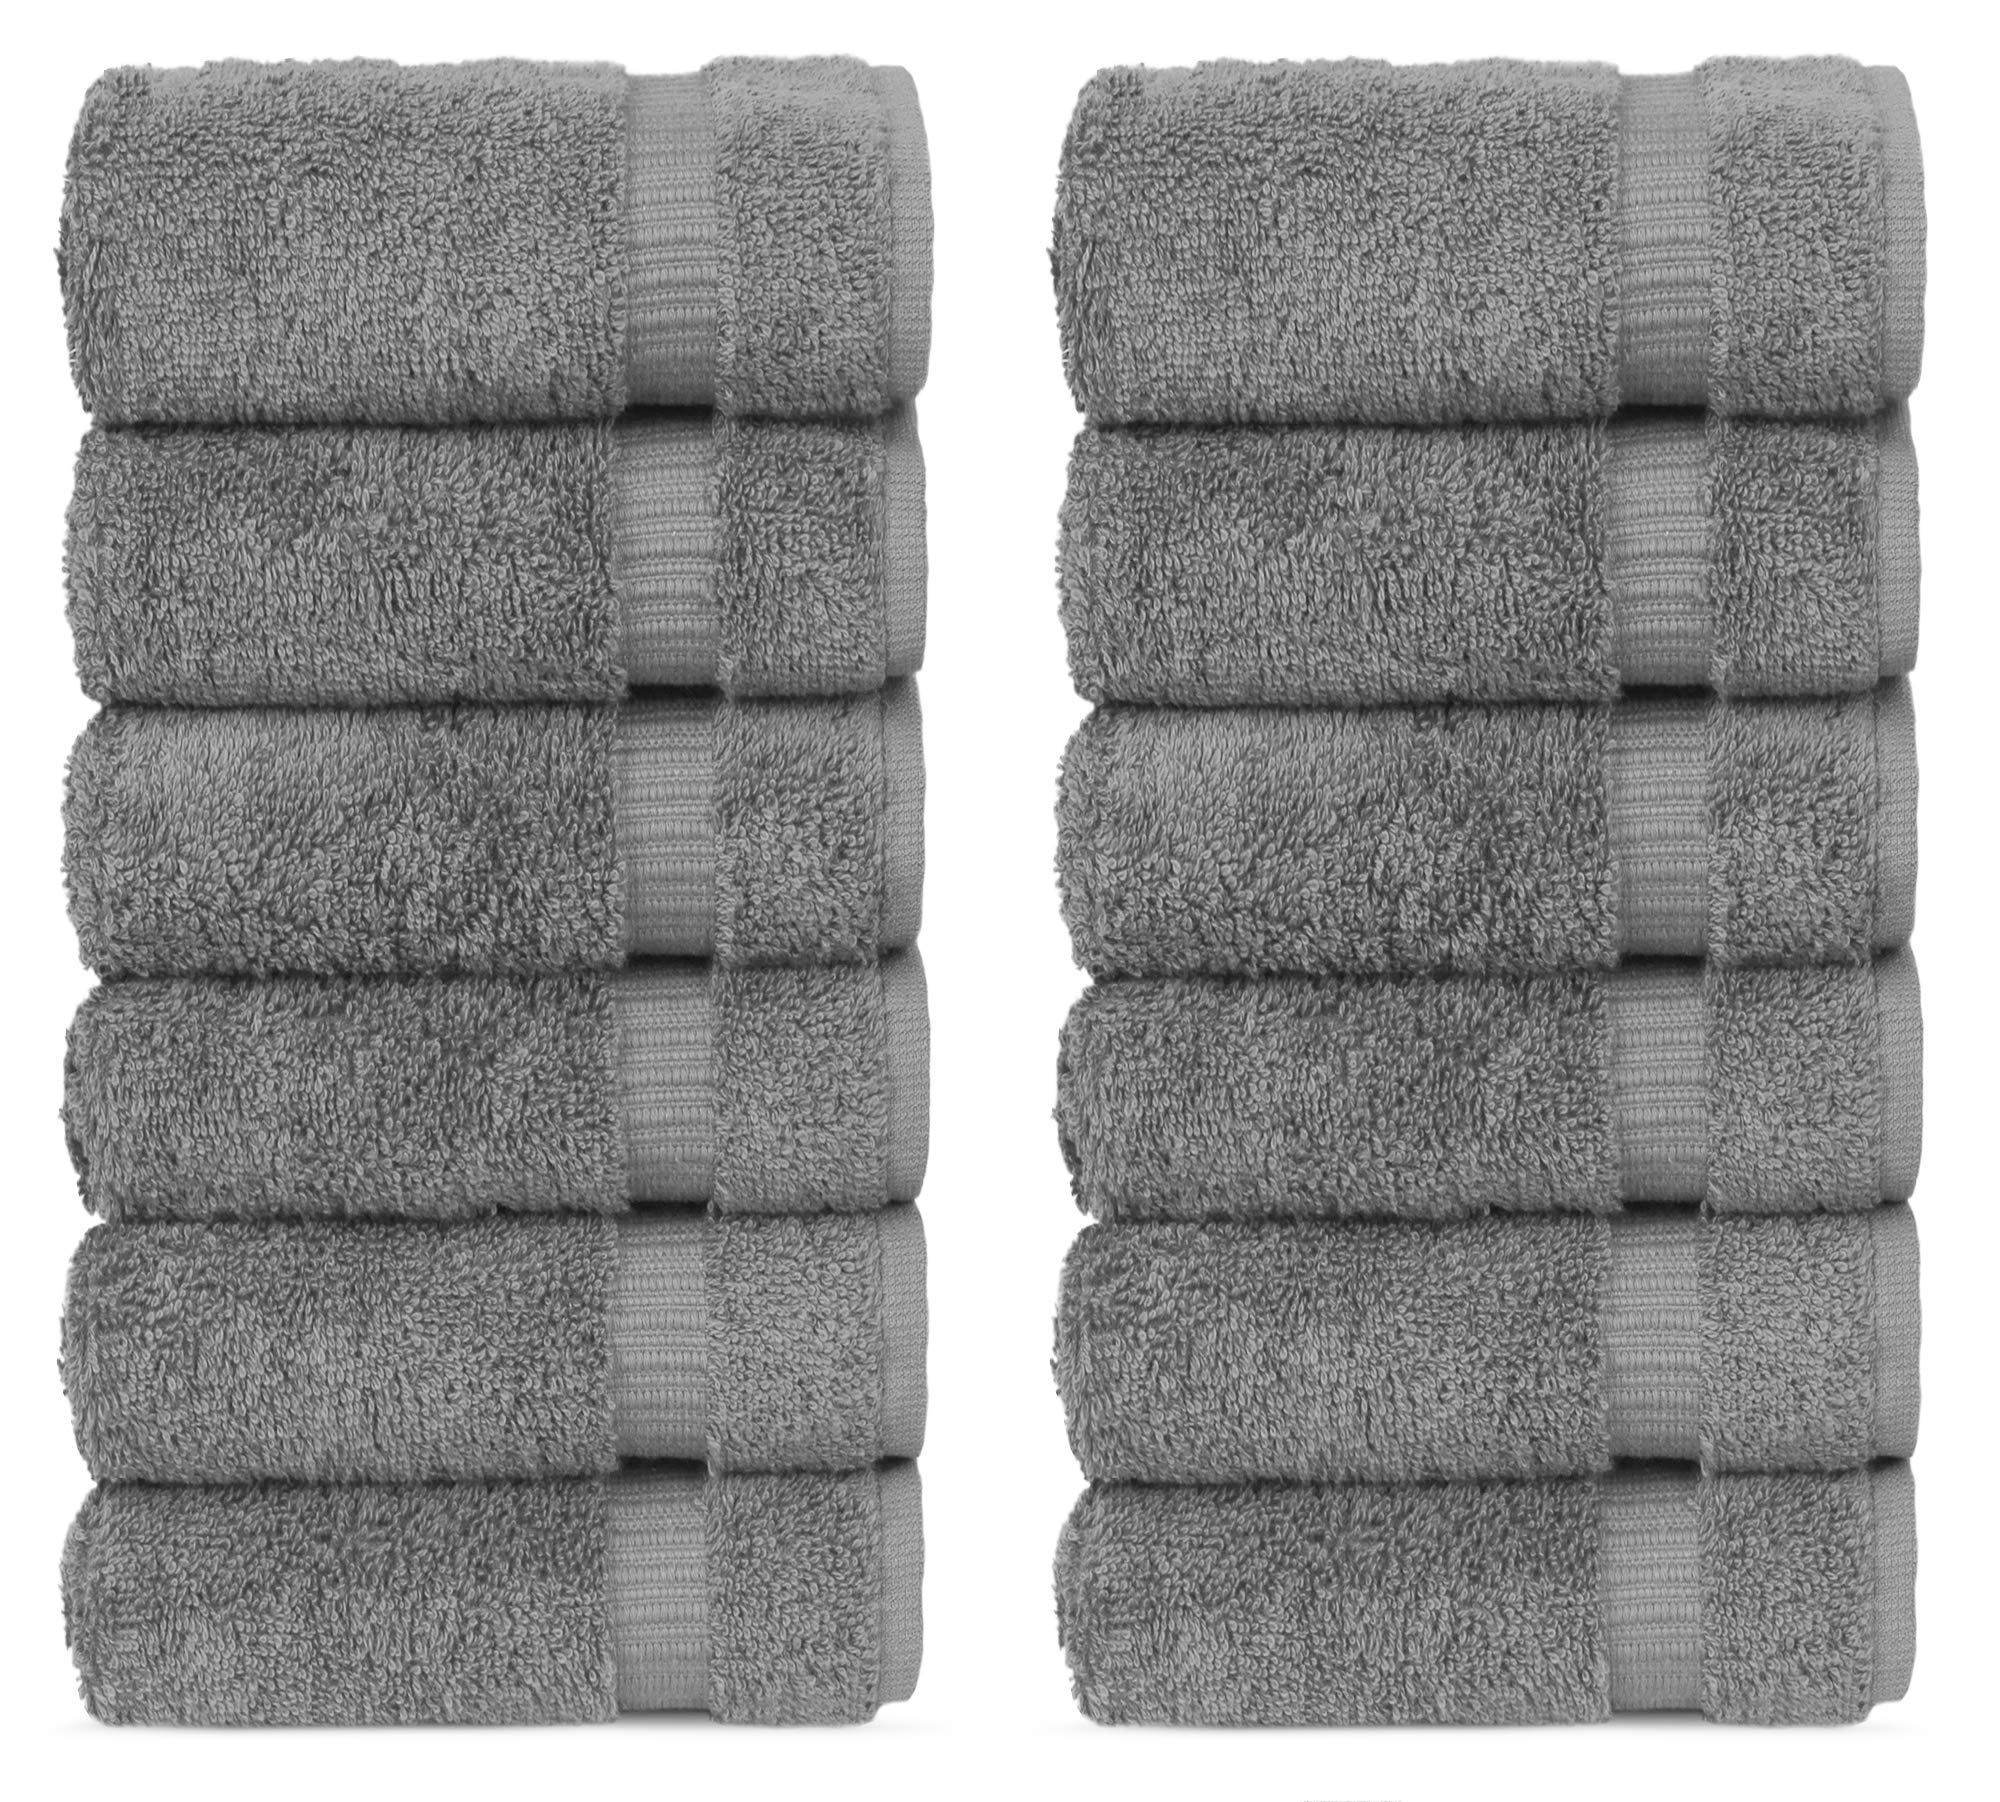 Chakir Turkish Linens Hotel & Spa Quality, Highly Absorbent 100% Turkish Cotton Washcloths (12 Pack, Gray) by Chakir Turkish Linens